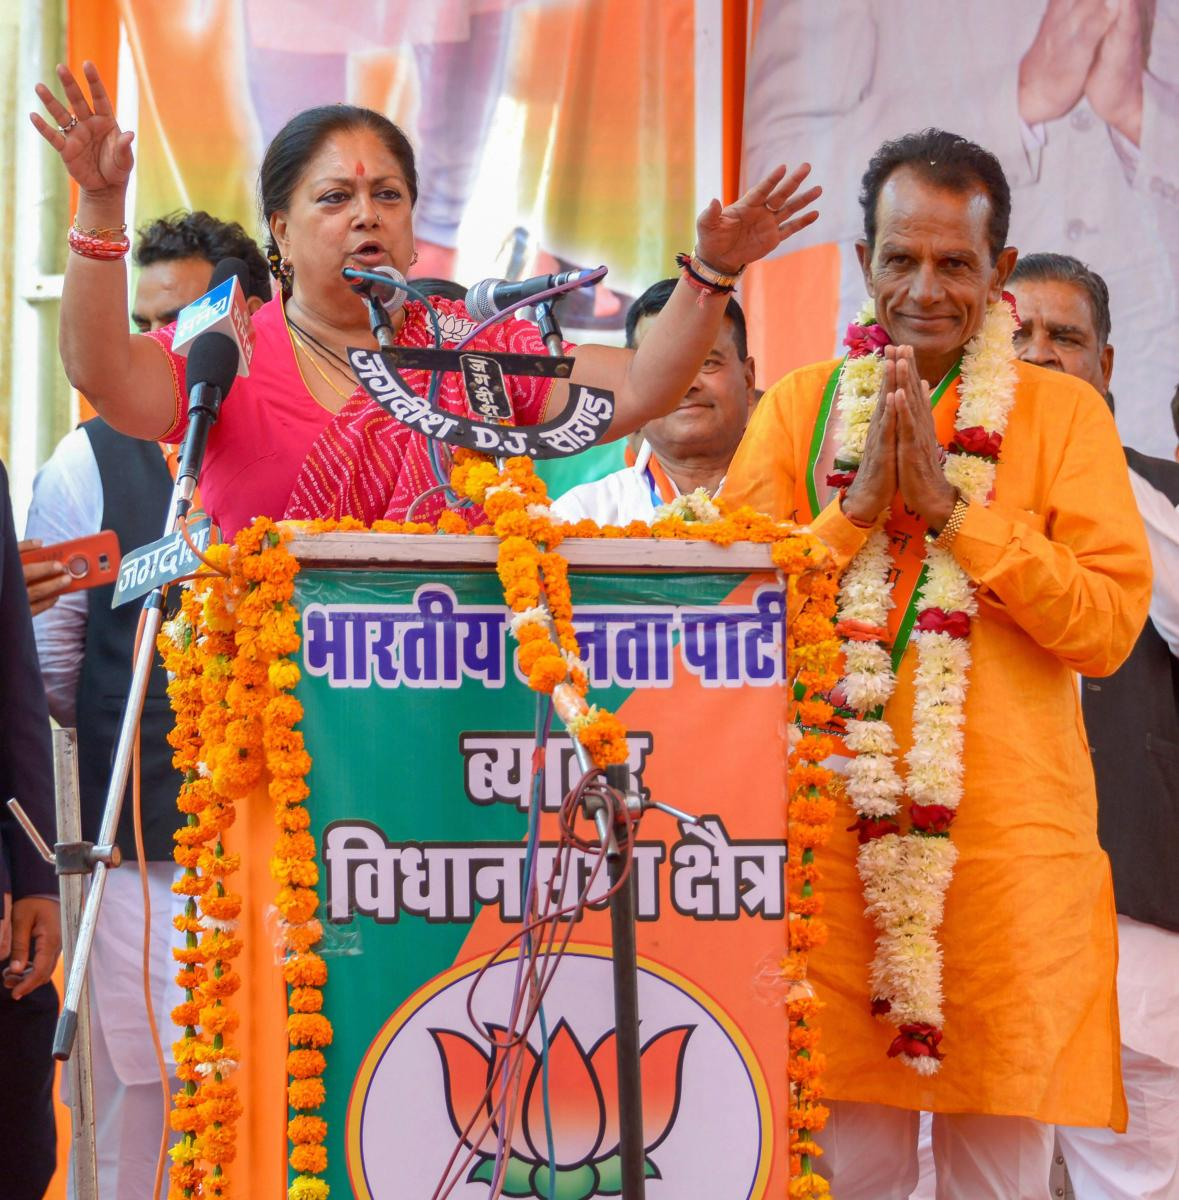 Beawar: Rajasthan Chief Minister Vasundhara Raje addresses an election rally in support of BJP candidate Shankar Singh Rawat, in Beawar, Tuesday, Nov. 27, 2018. (PTI Photo) (PTI11_27_2018_000139B)